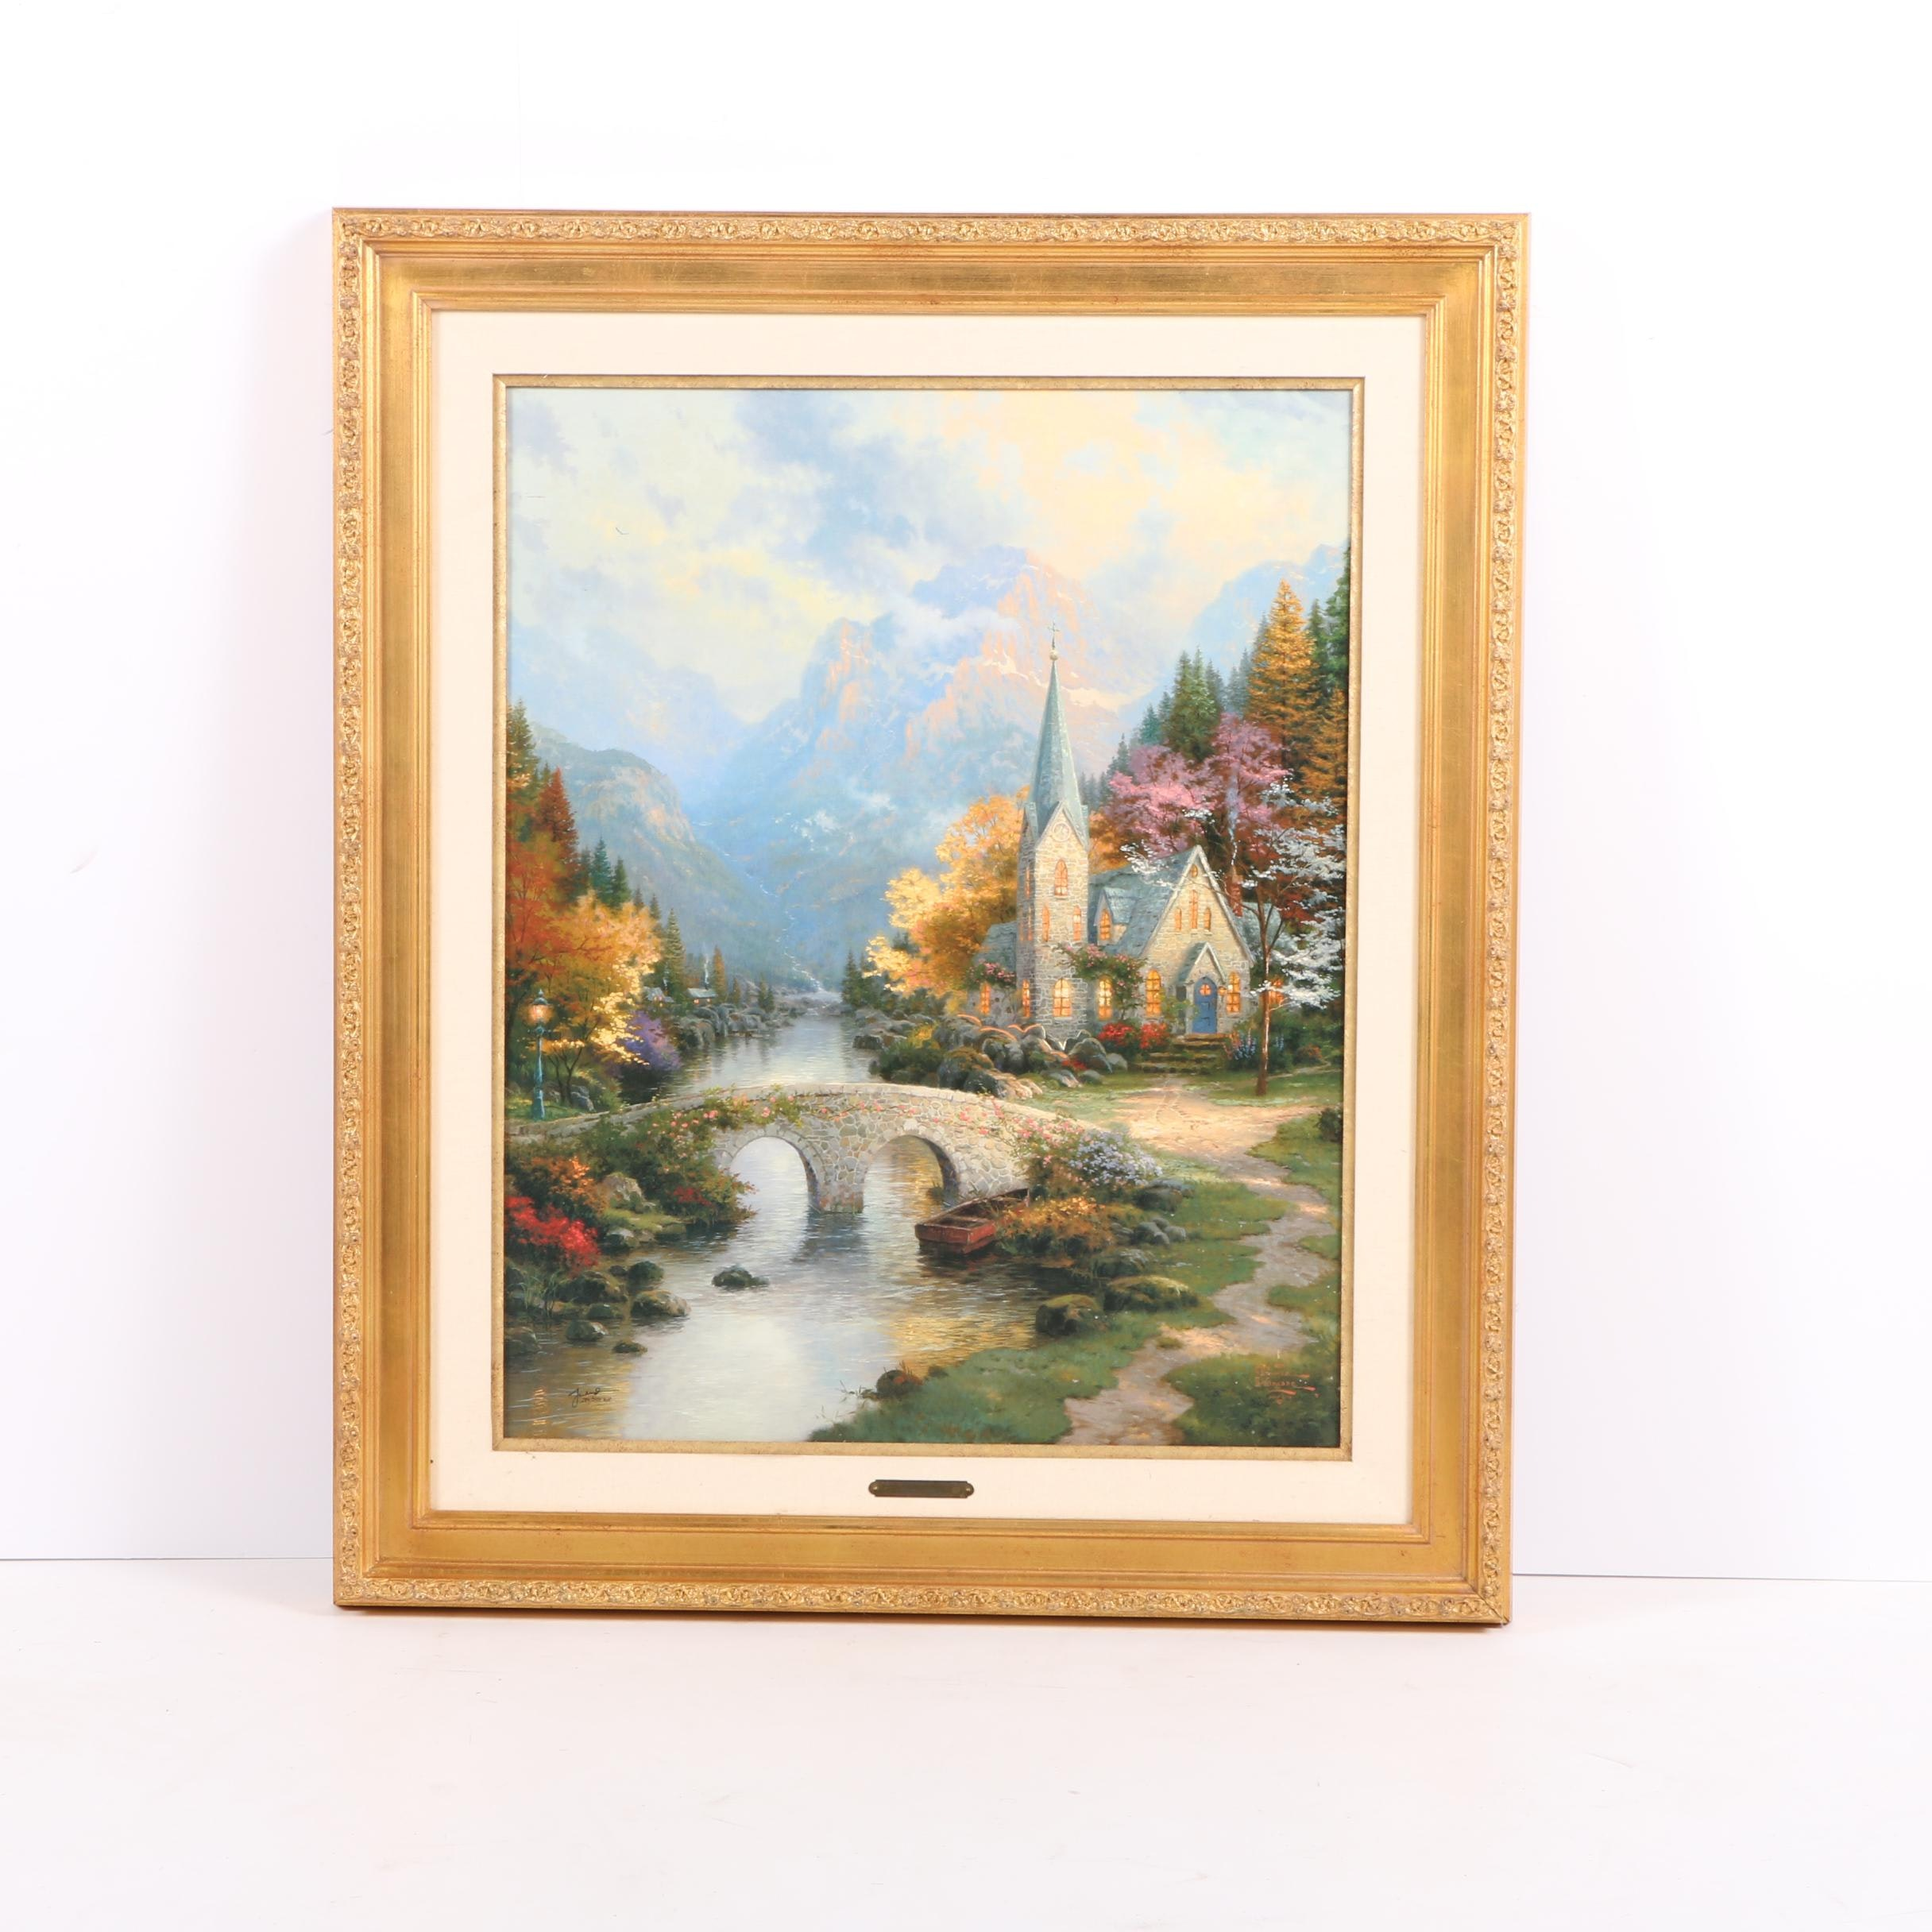 "Offset Lithograph on Canvas After Thomas Kinkade's ""The Mountain Chapel"""